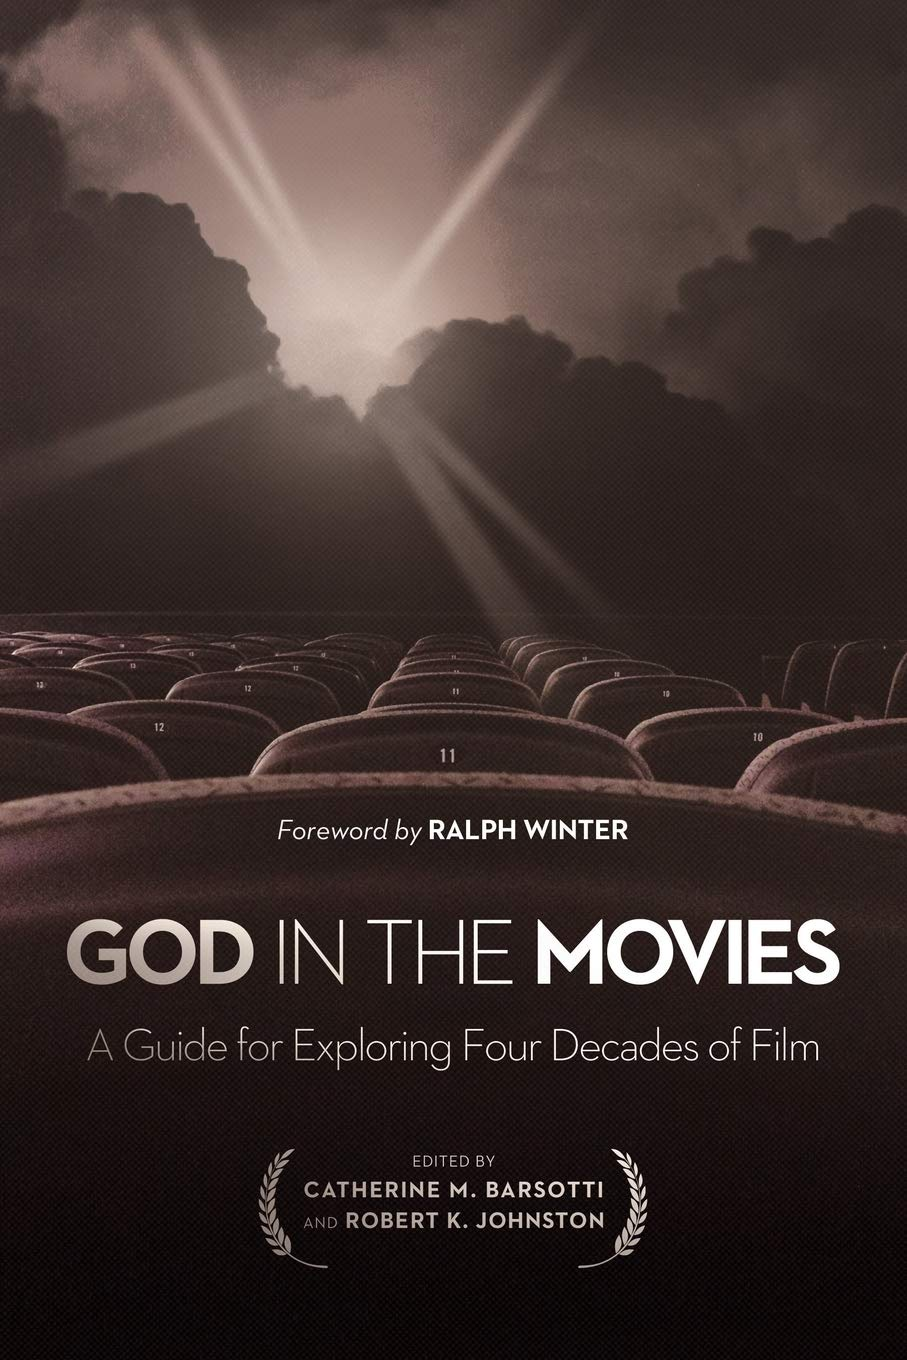 god in the movies cover